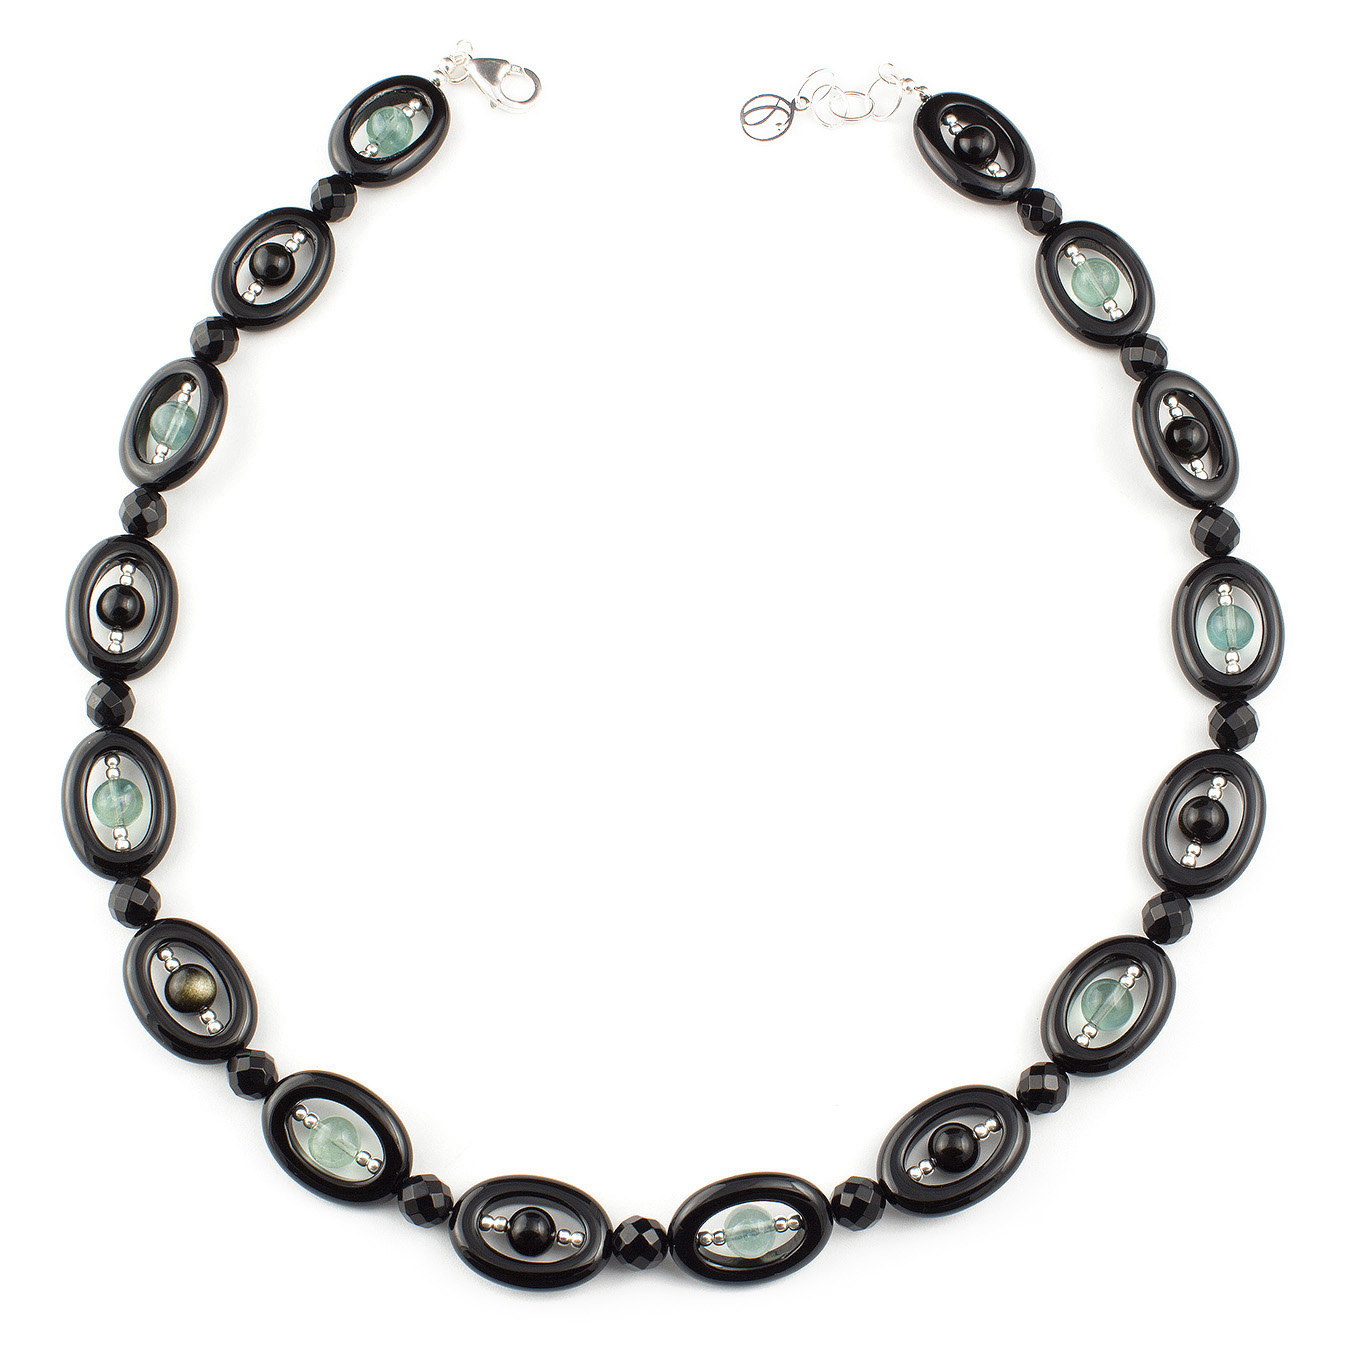 Personalized artisan choker necklace using obsidian gemstones